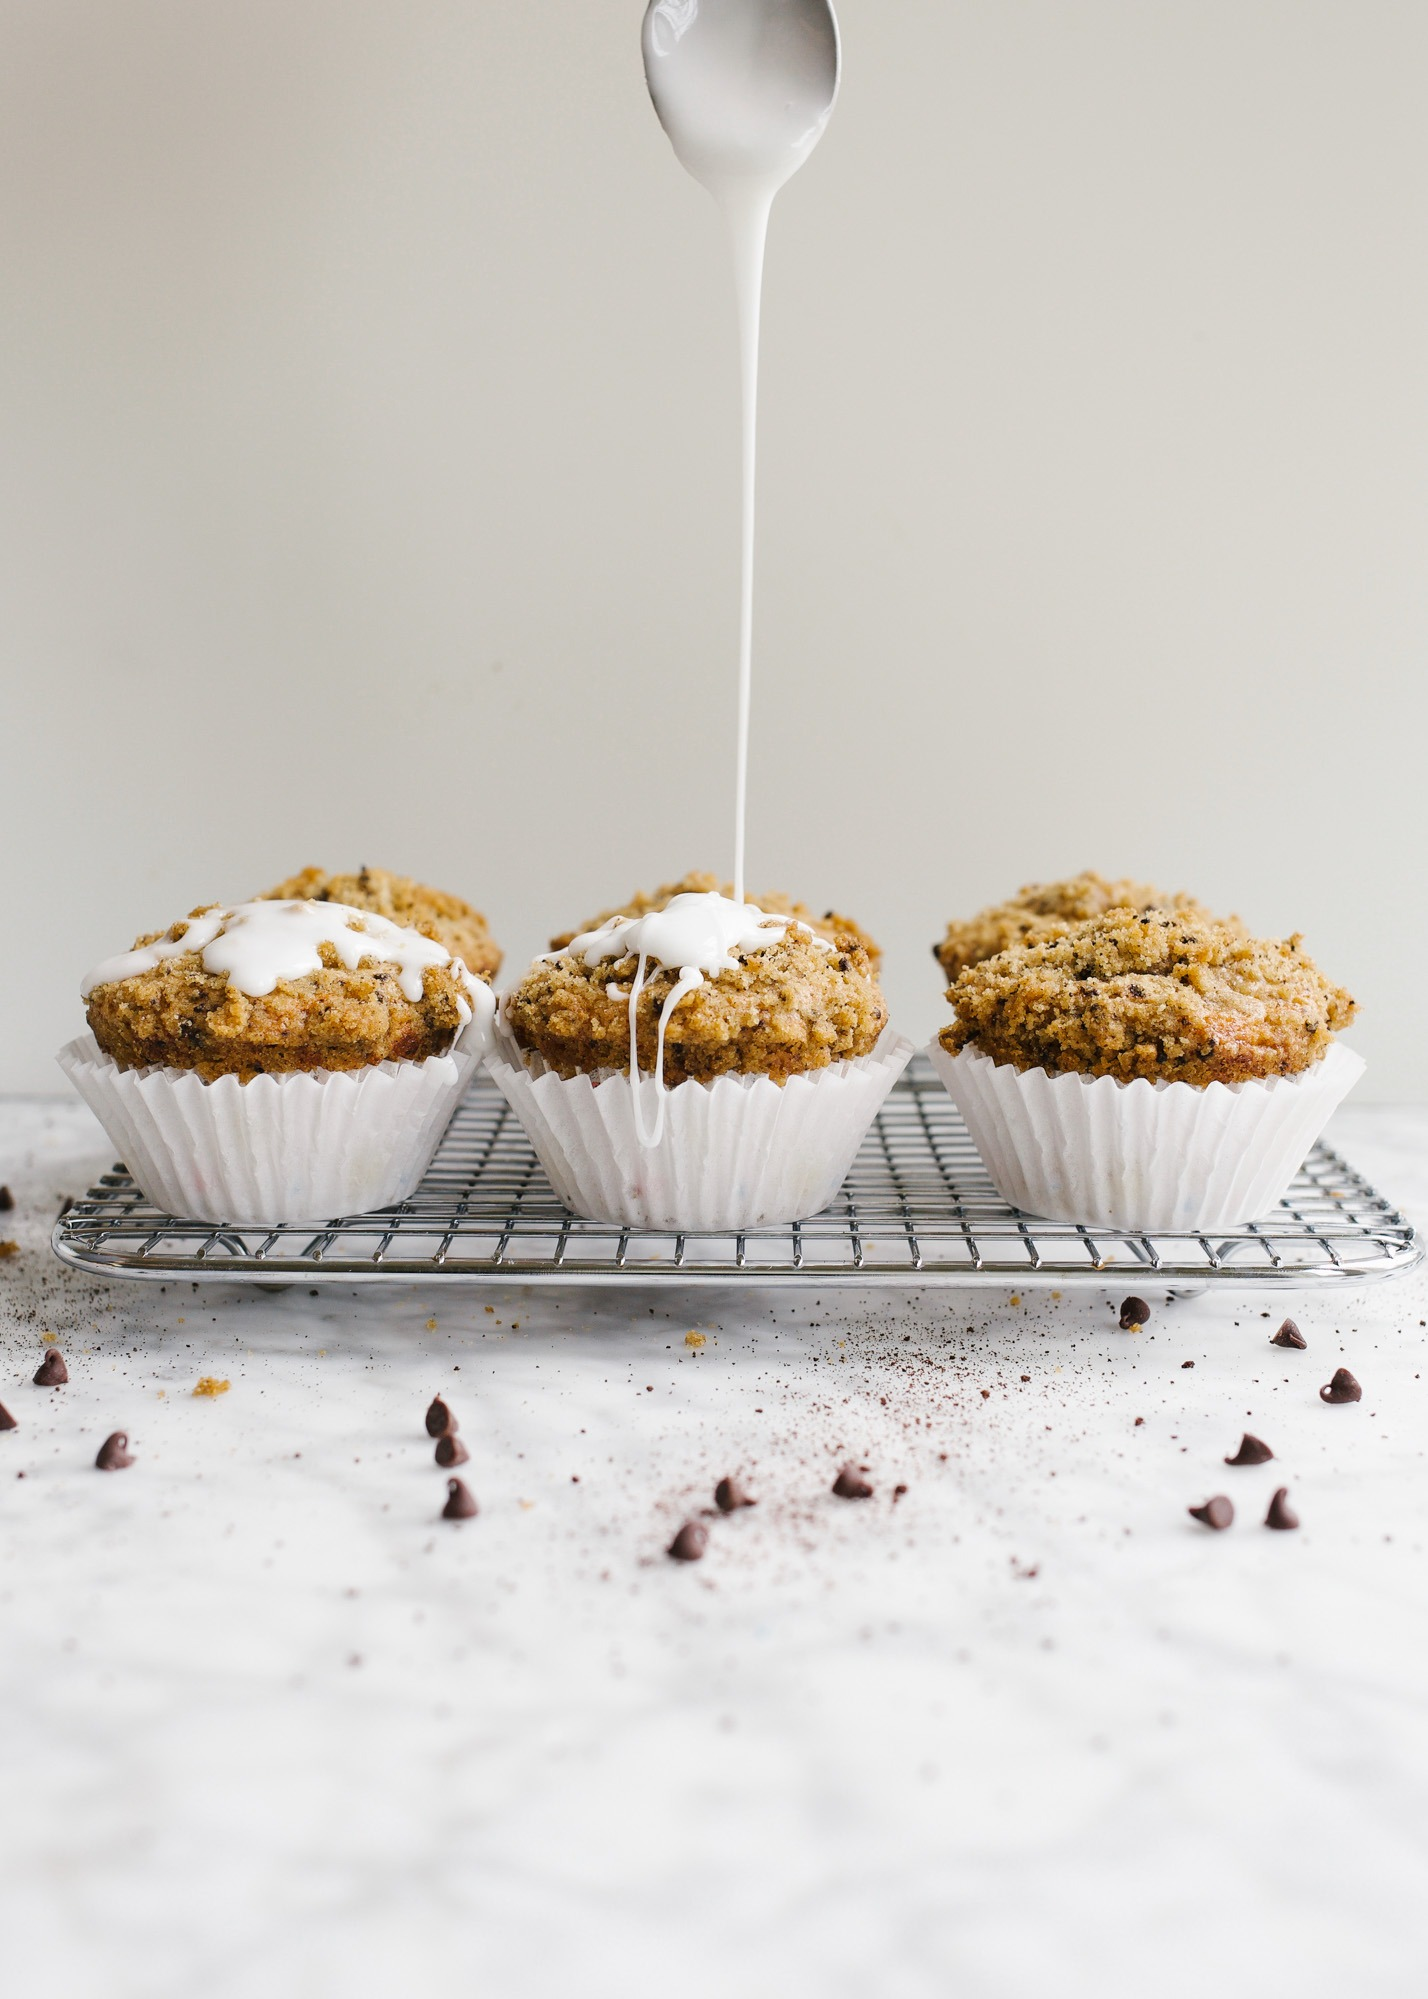 Java Chip Muffins by Wood and Spoon blog. These are fluffy, one-bowl muffins scented with coffee and dotted with mini chocolate chips. The muffins have a simple brown sugar streusel crumble that has espresso powder and adds a bit of sweet to the muffins. These taste terrific with morning coffee and are a simple make ahead breakfast or brunch treat. Learn more about this easy family recipe on thewoodandspoon.com